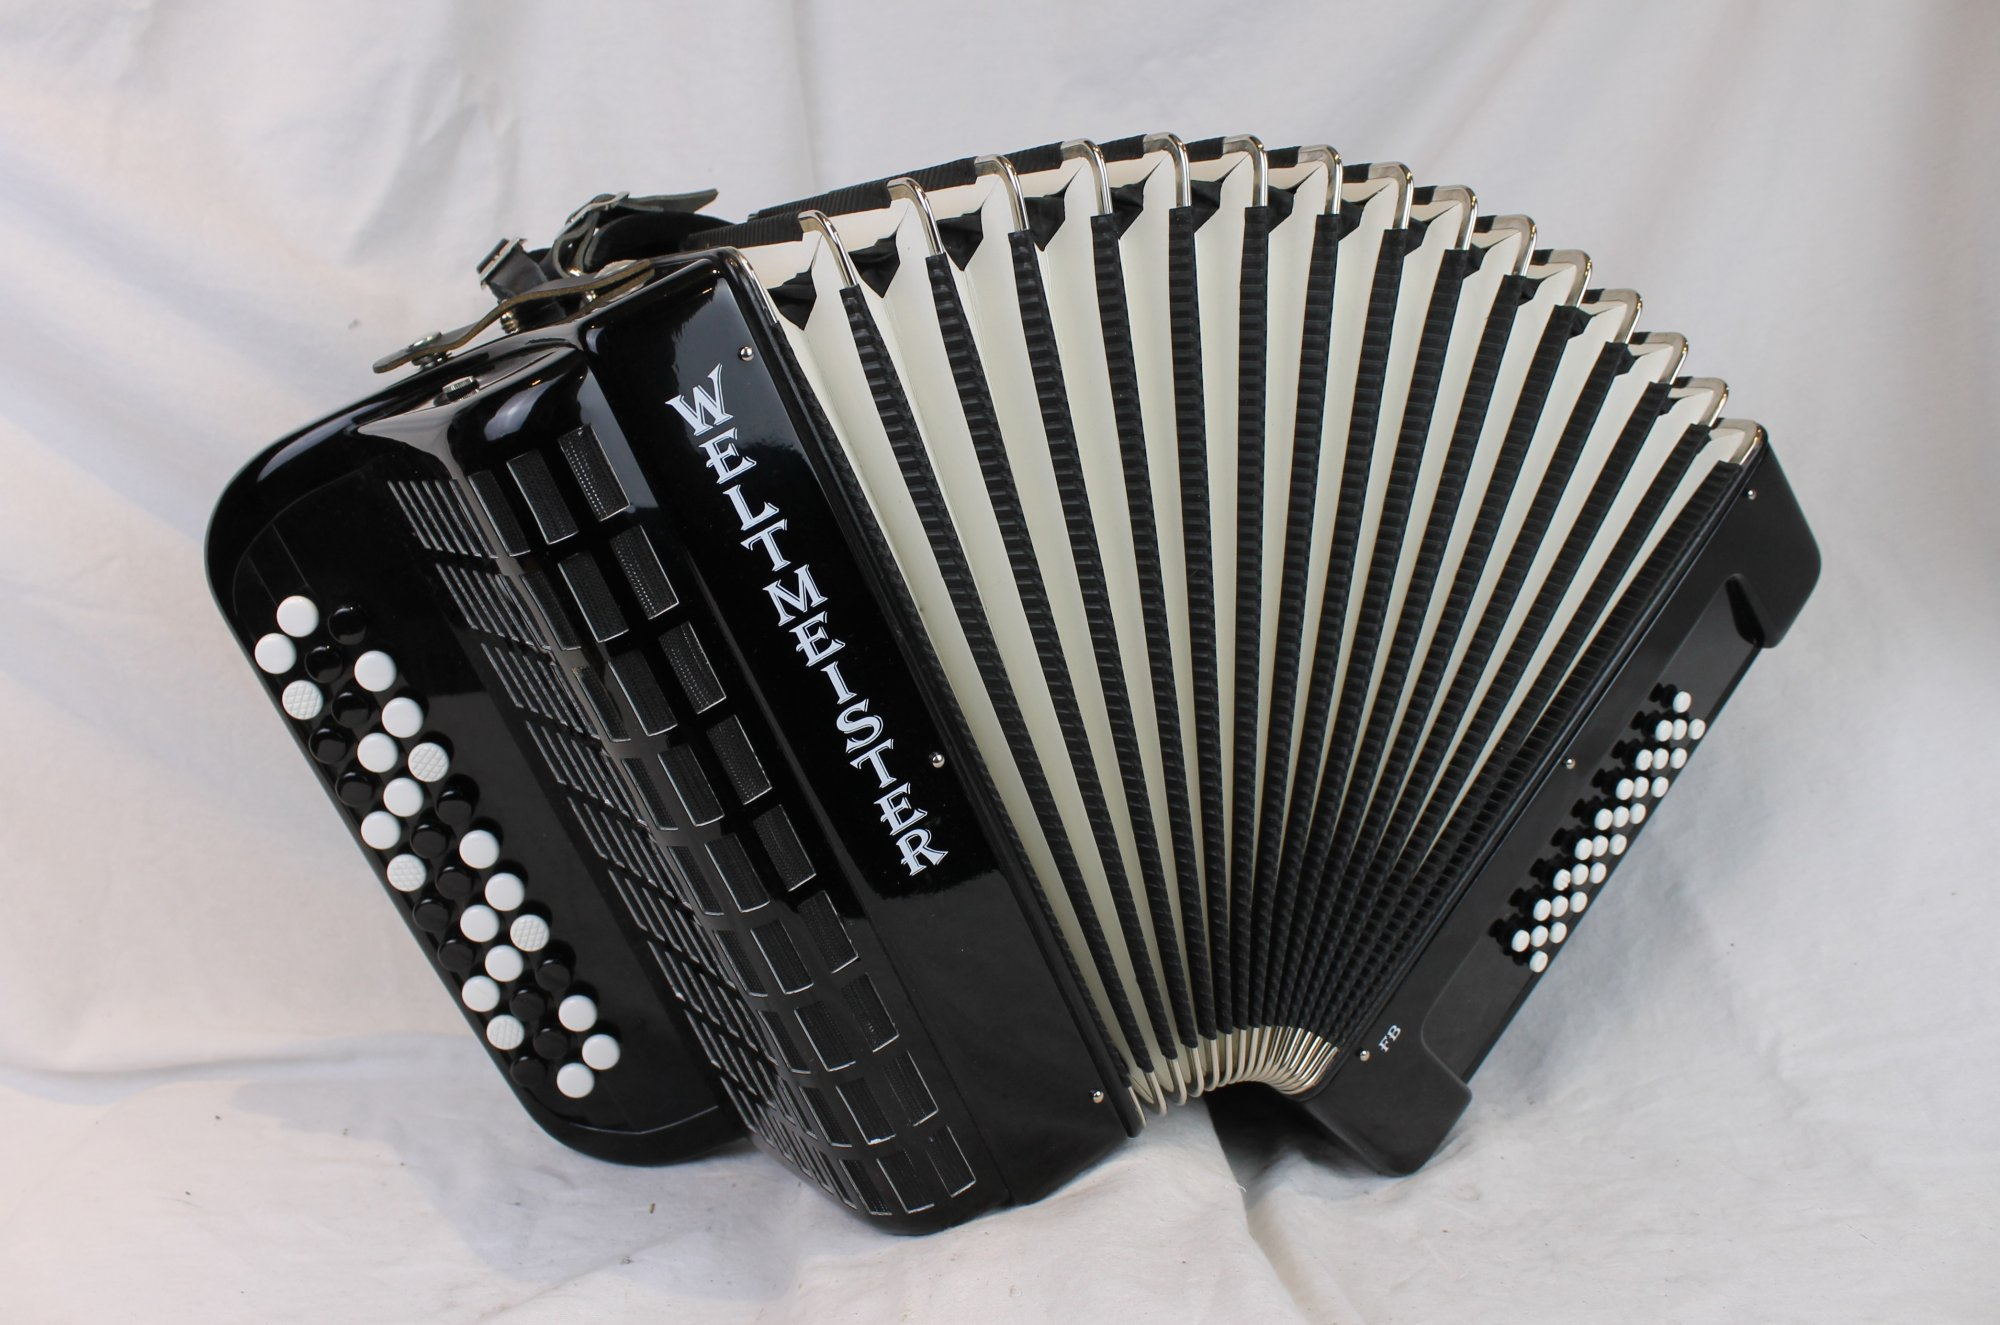 3973 - Certified Pre-Owned Black Weltmeister FB26K Free Bass Chromatic Button Accordion C M 34 26